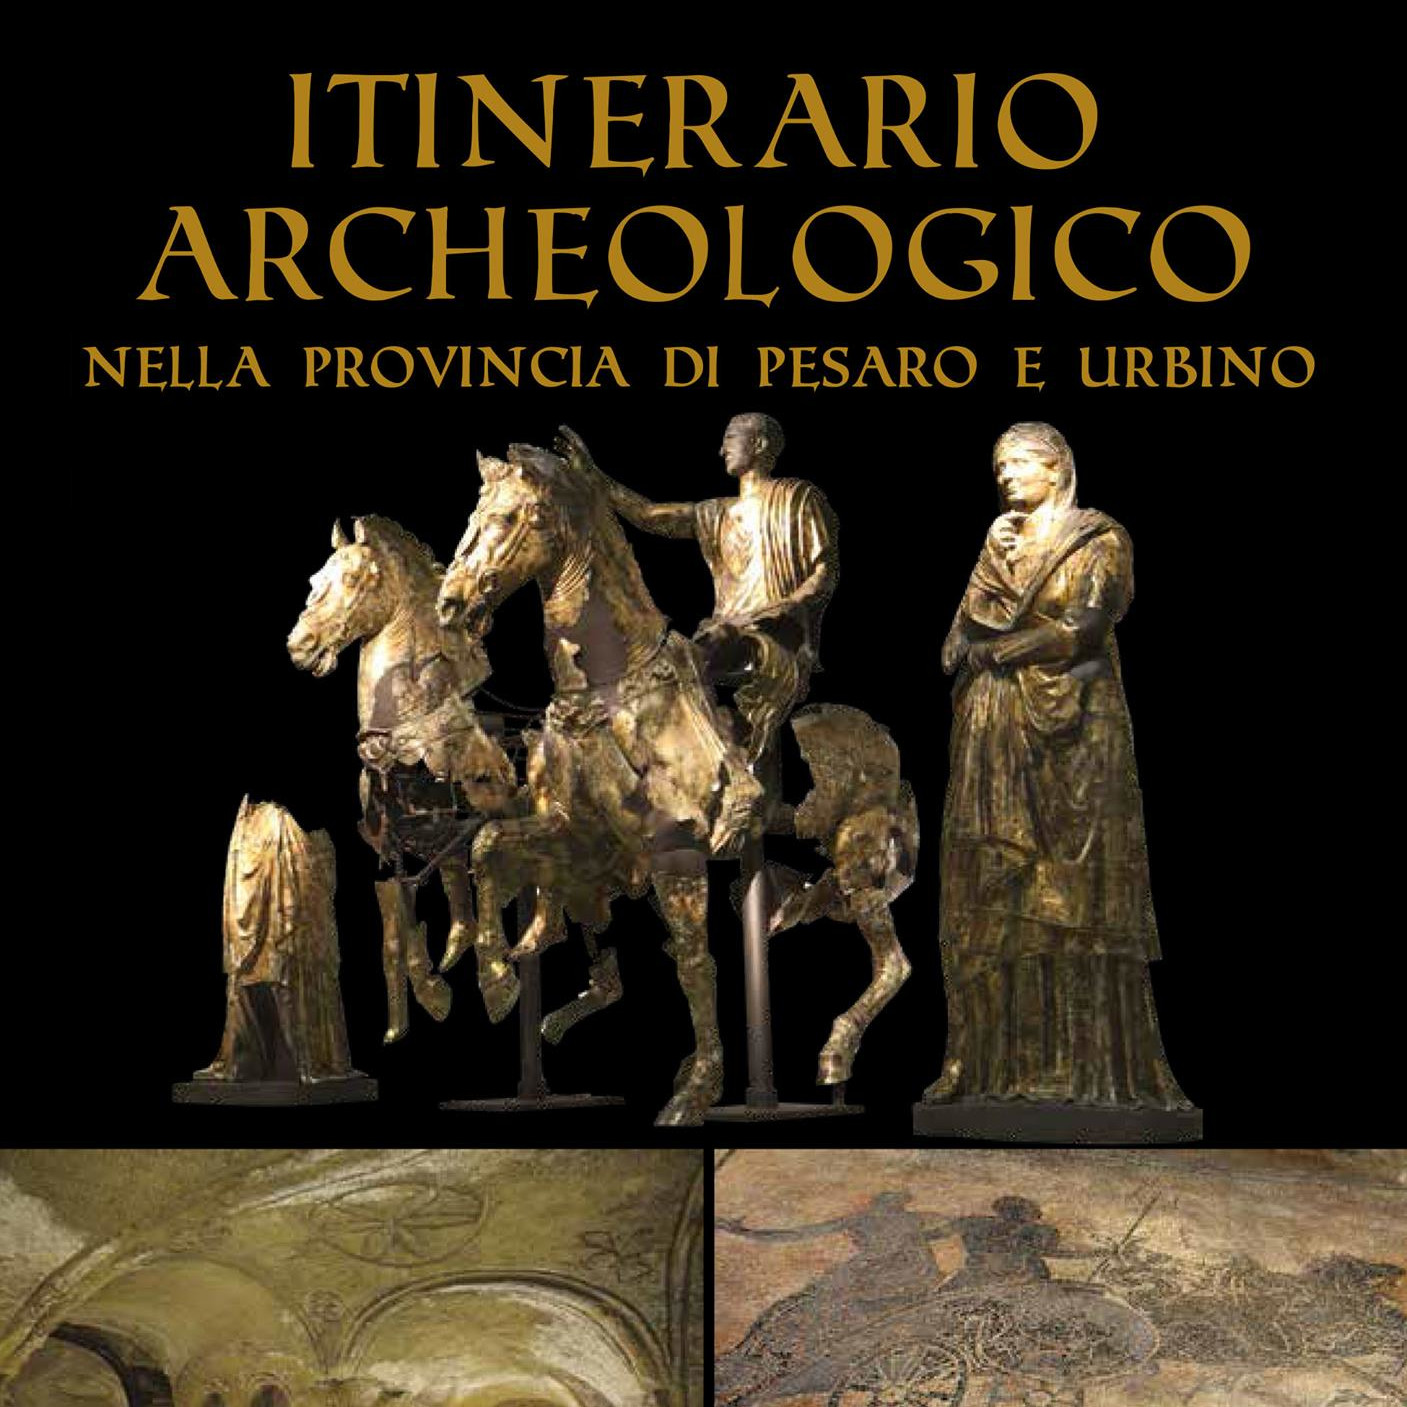 ARCHAEOLOGICAL ITINERARY